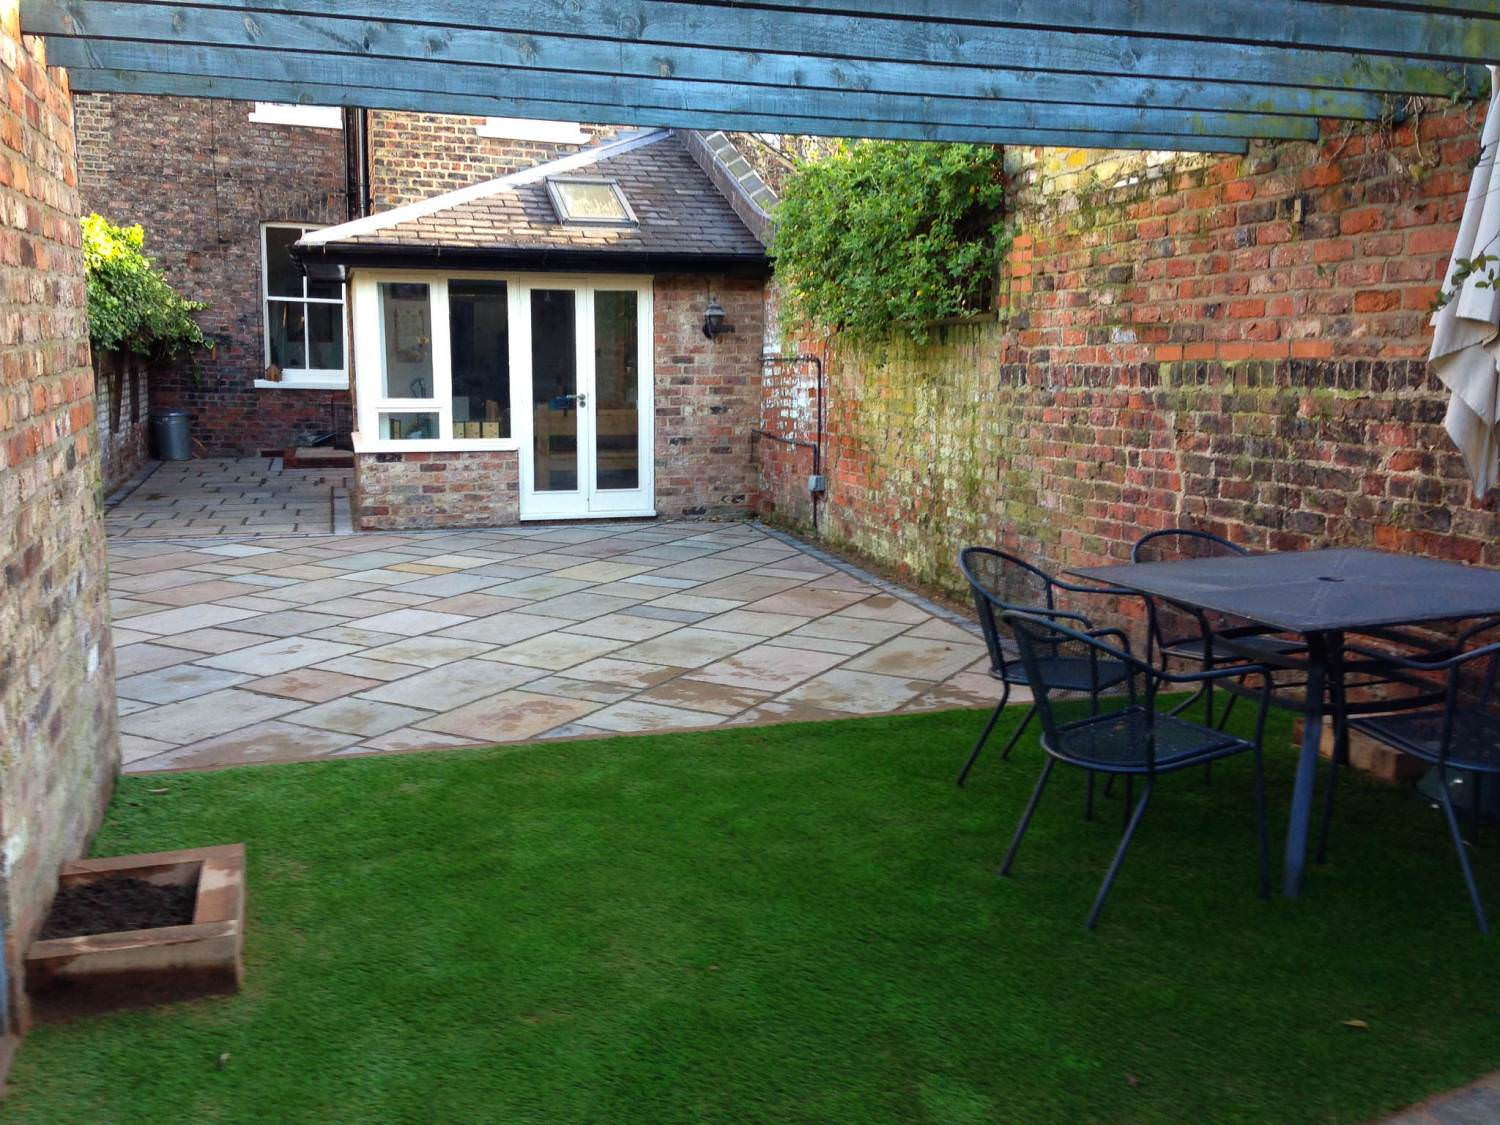 Landscape gardeners in york yorskapes for Garden design york uk